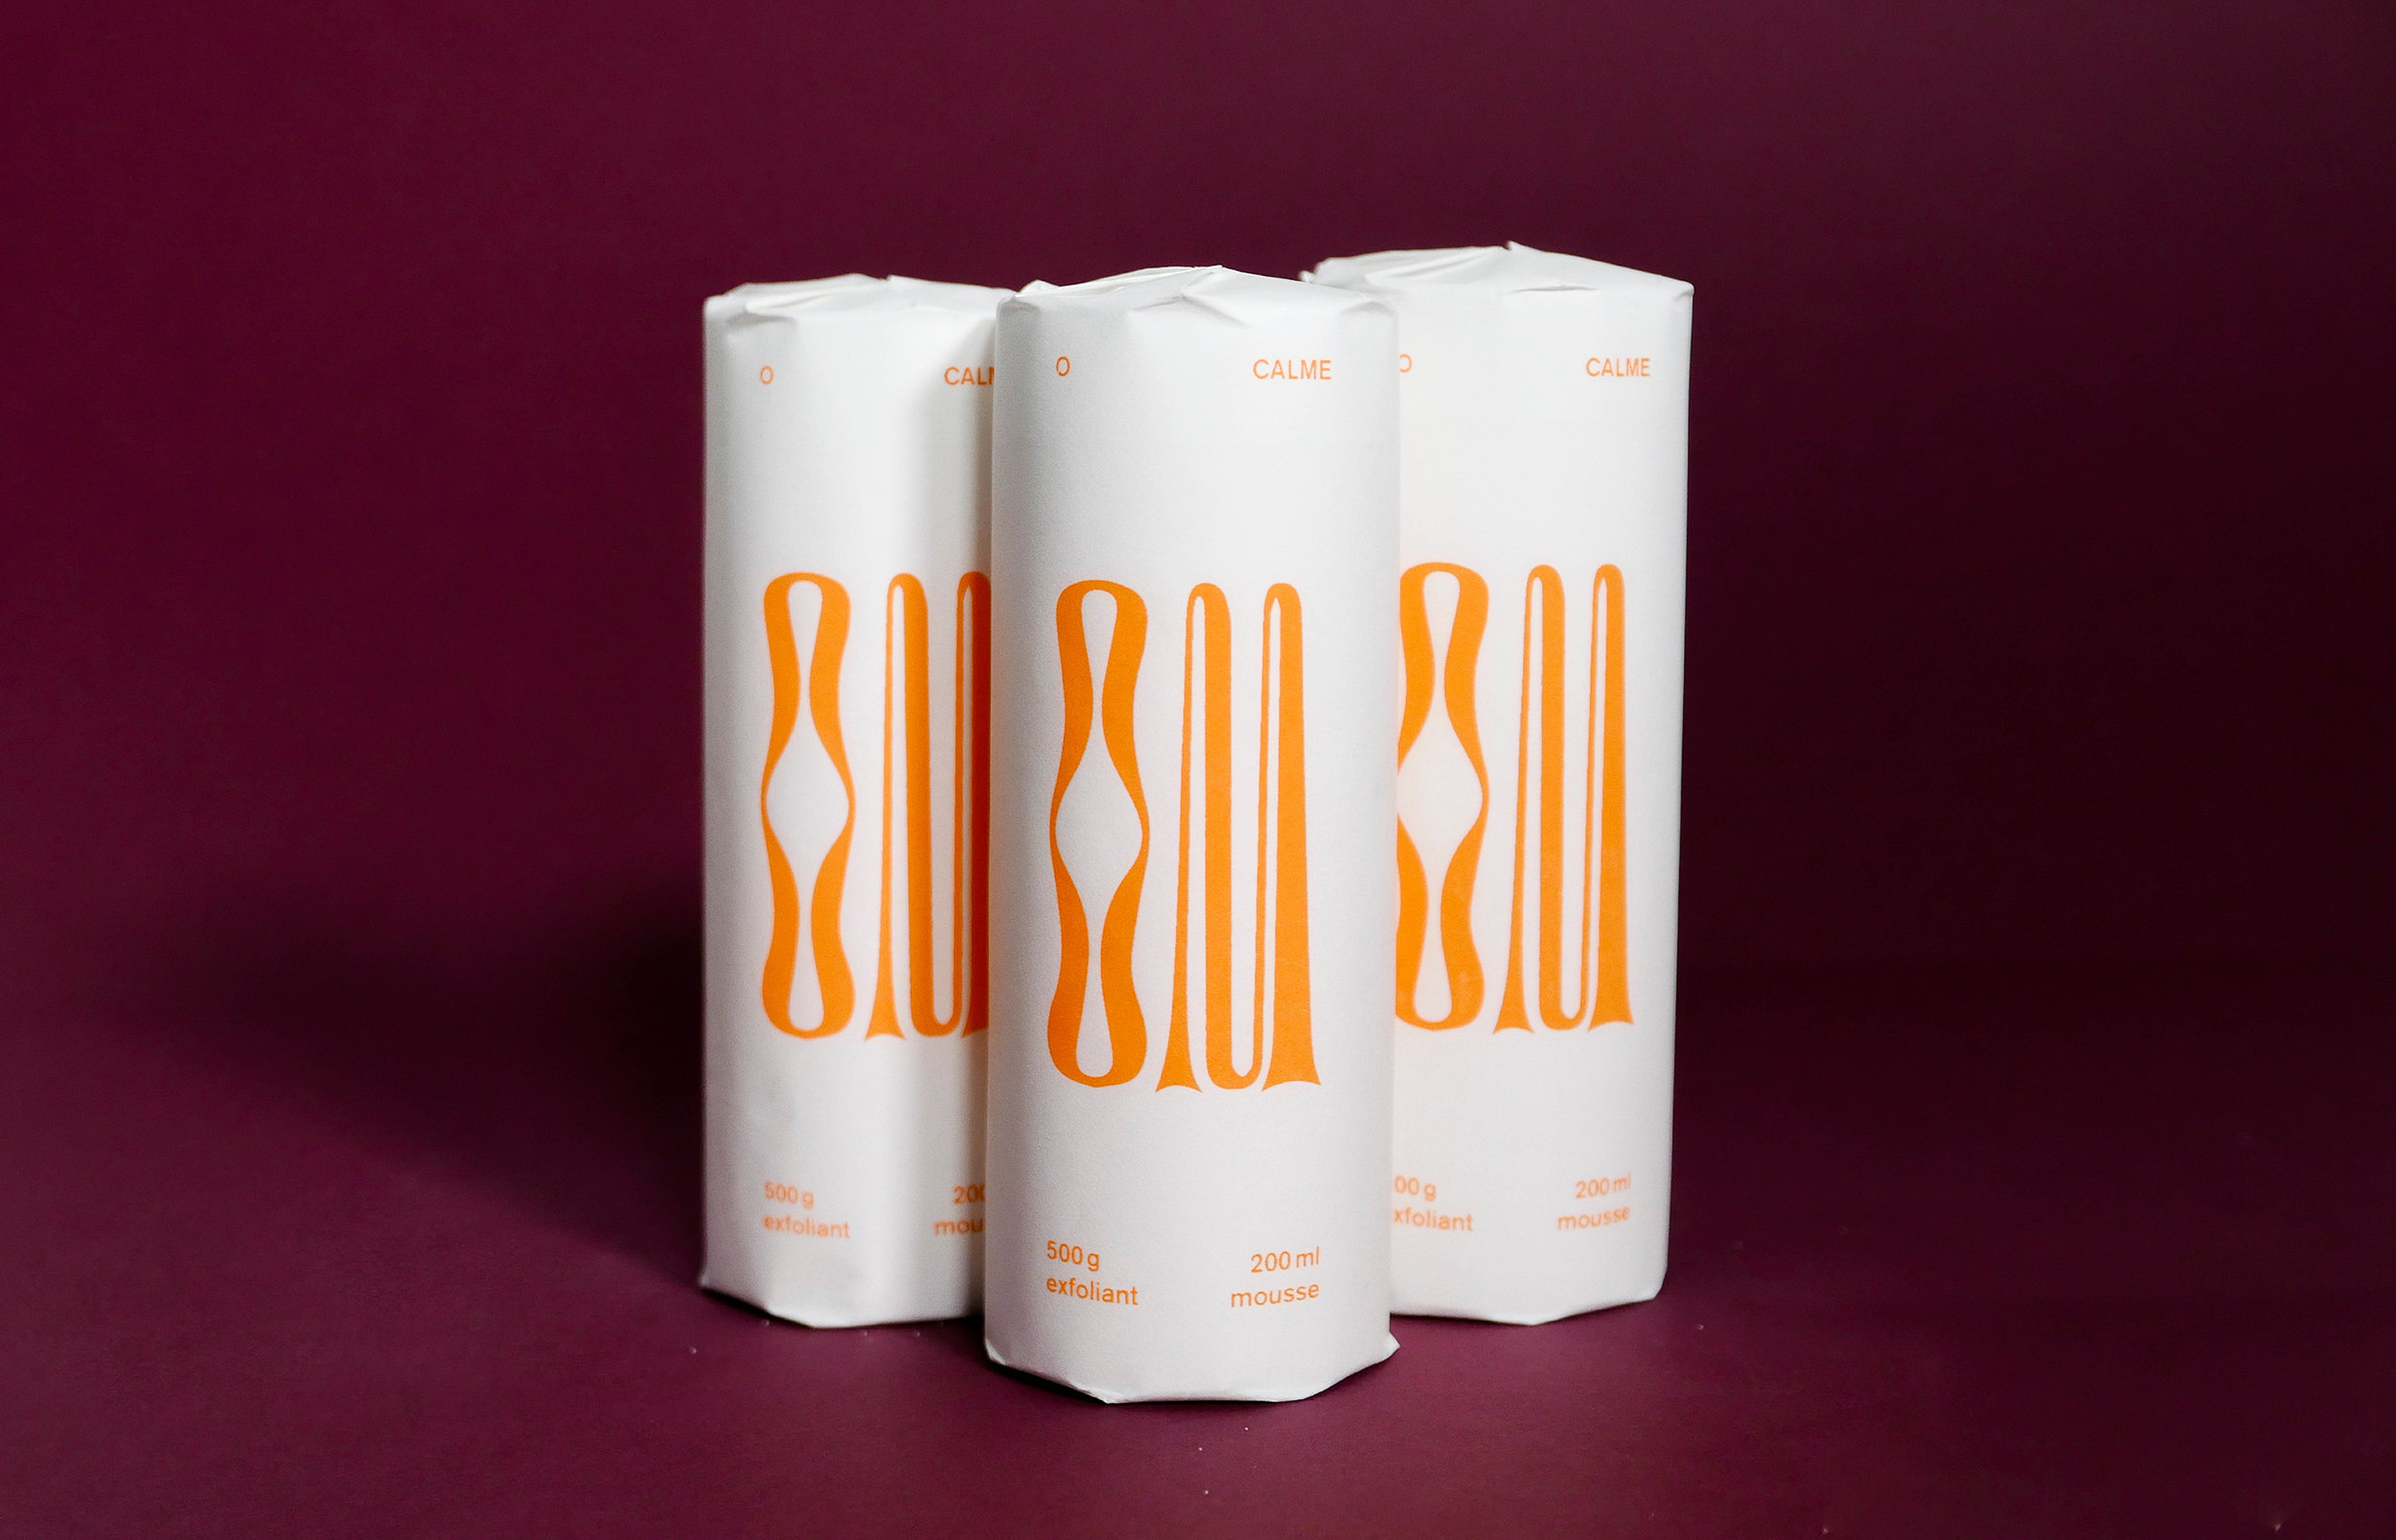 Student Concept from Traditional Packaging that Moves Towards Zero Waste for Salt